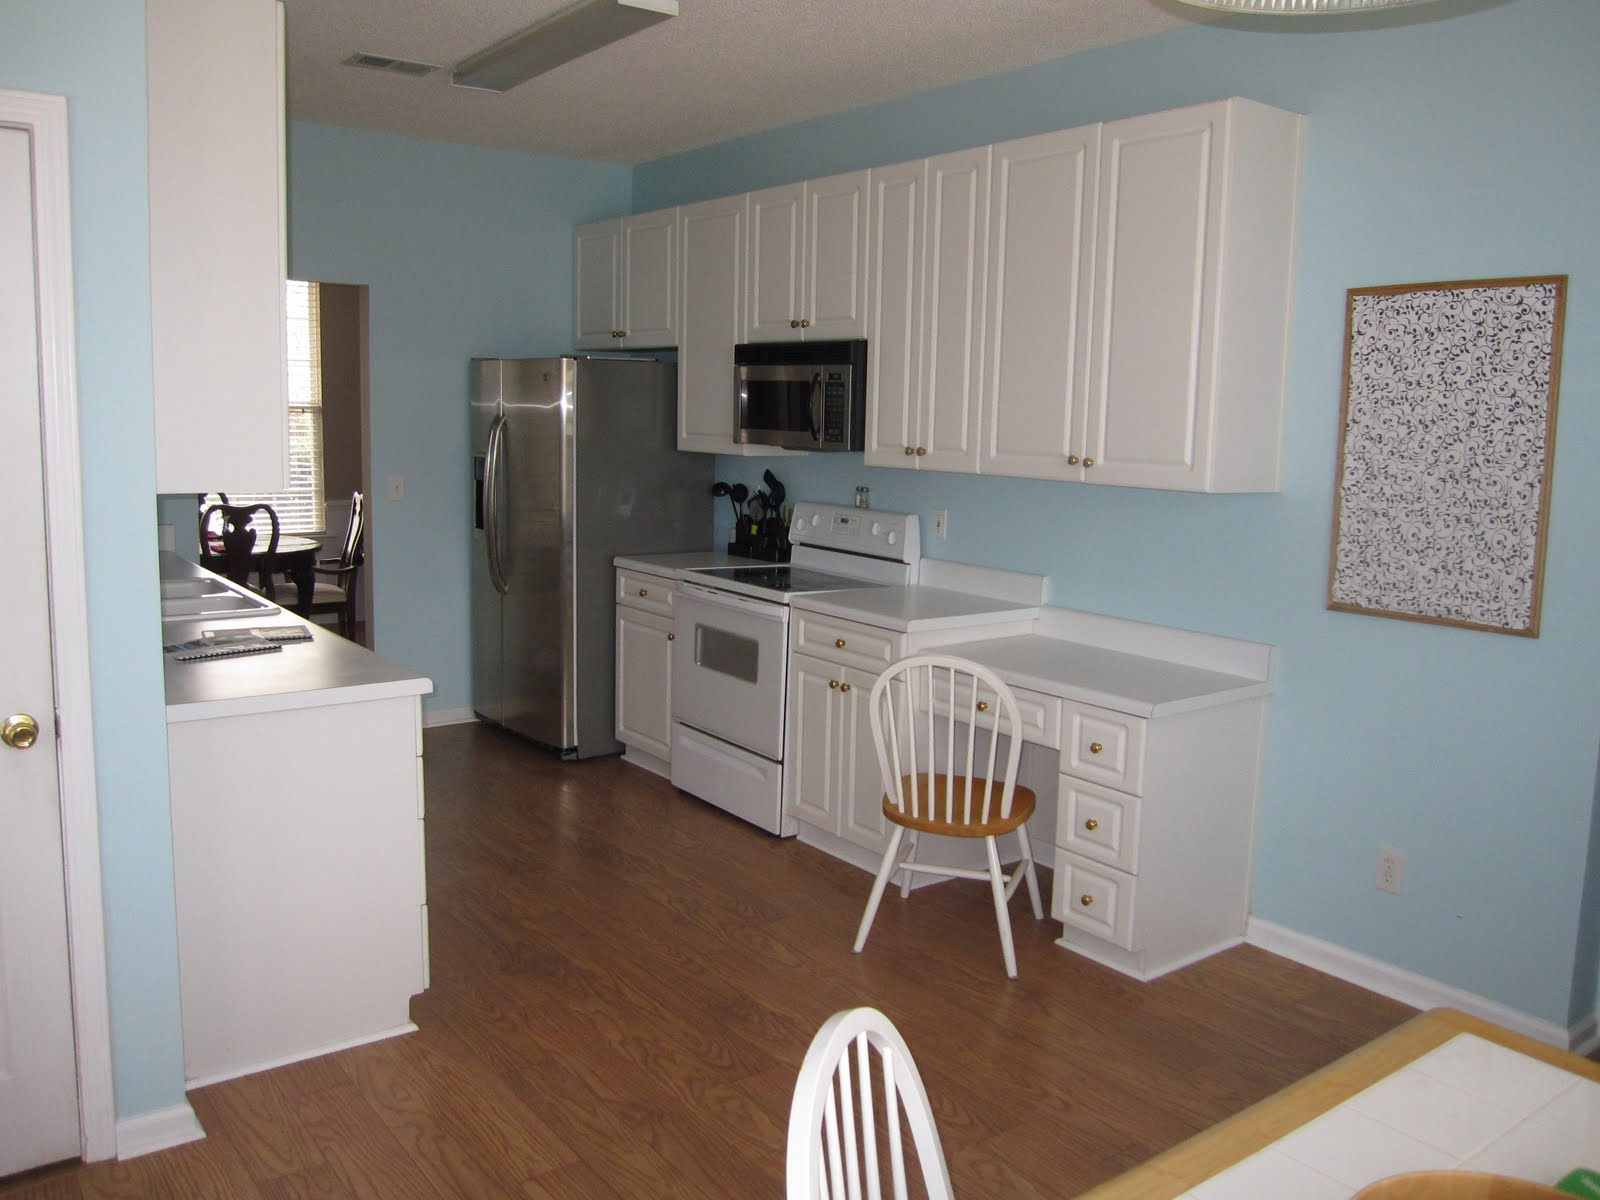 Light Blue Kitchen Walls with Brown Cabinets